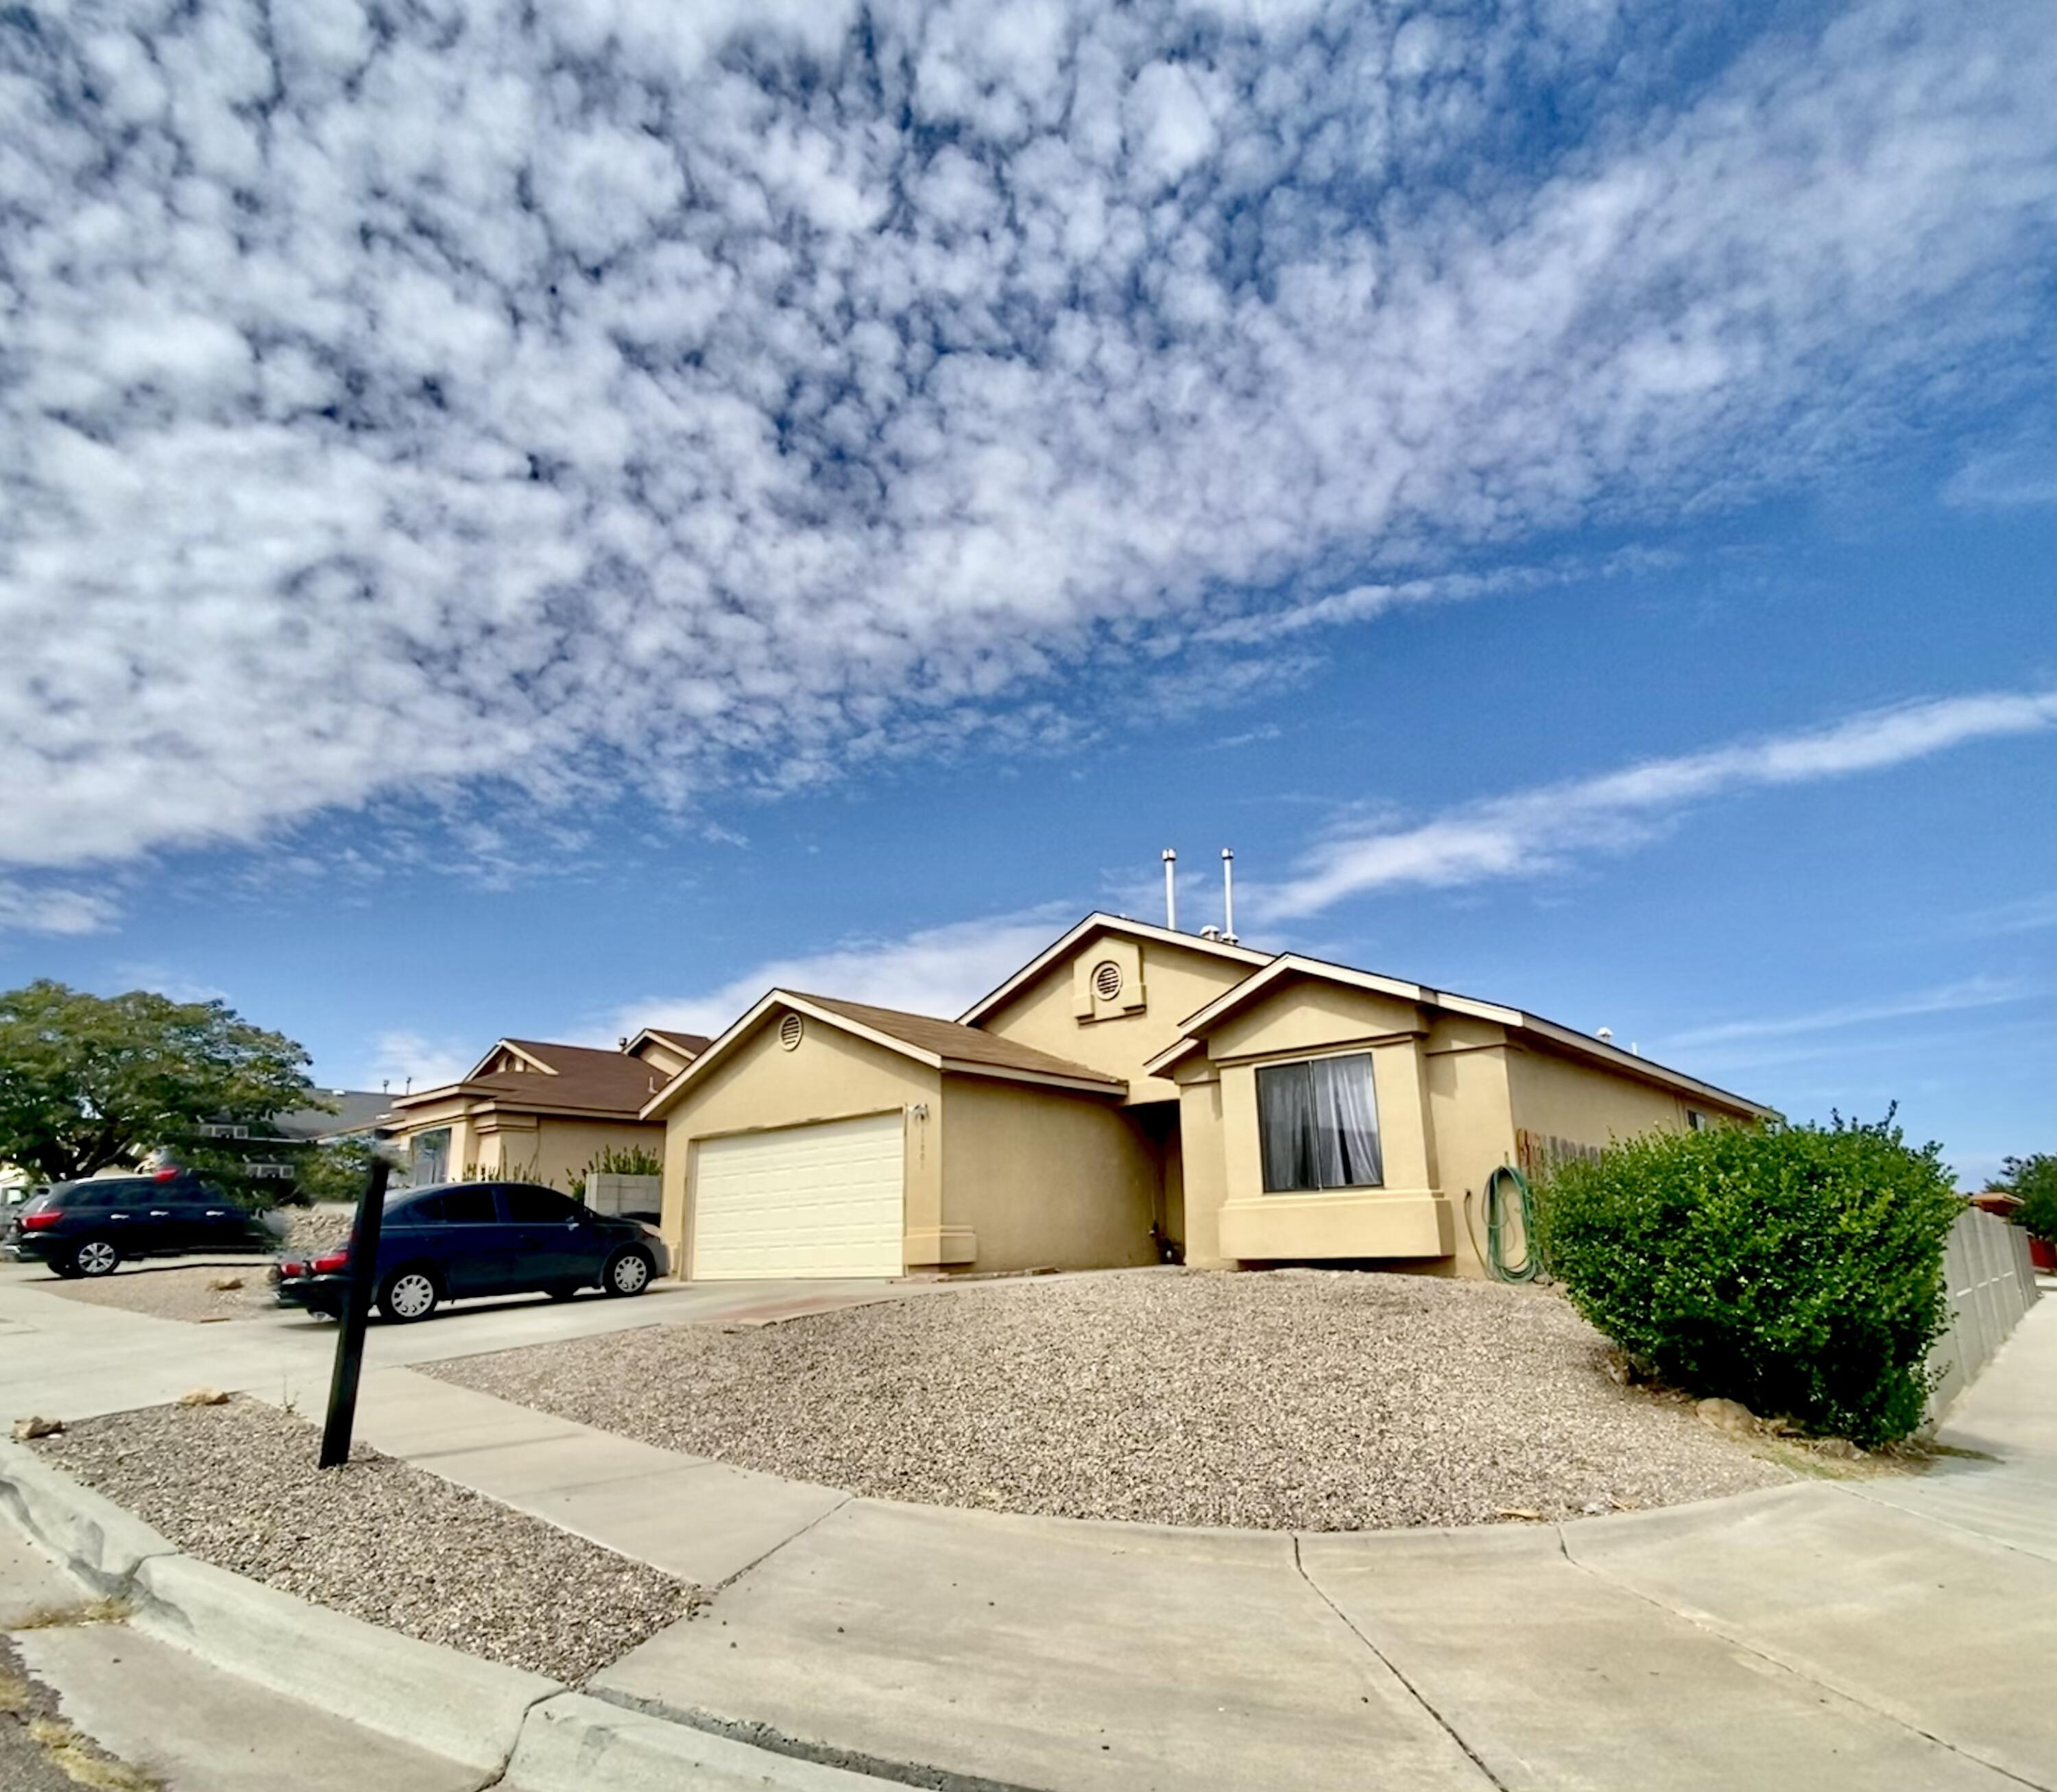 Beautiful well kept home with  4 Bedrooms - 2 baths - 2 car garage on a nice corner lot. Kitchen with plenty of cabinets, nice backsplash. big bright open living room with big windows! good size master bedroom with walk-in closet and separated from all other bedrooms with a full bathroom. all other rooms in good size, nice cover patio out in the backyard. Come see today!